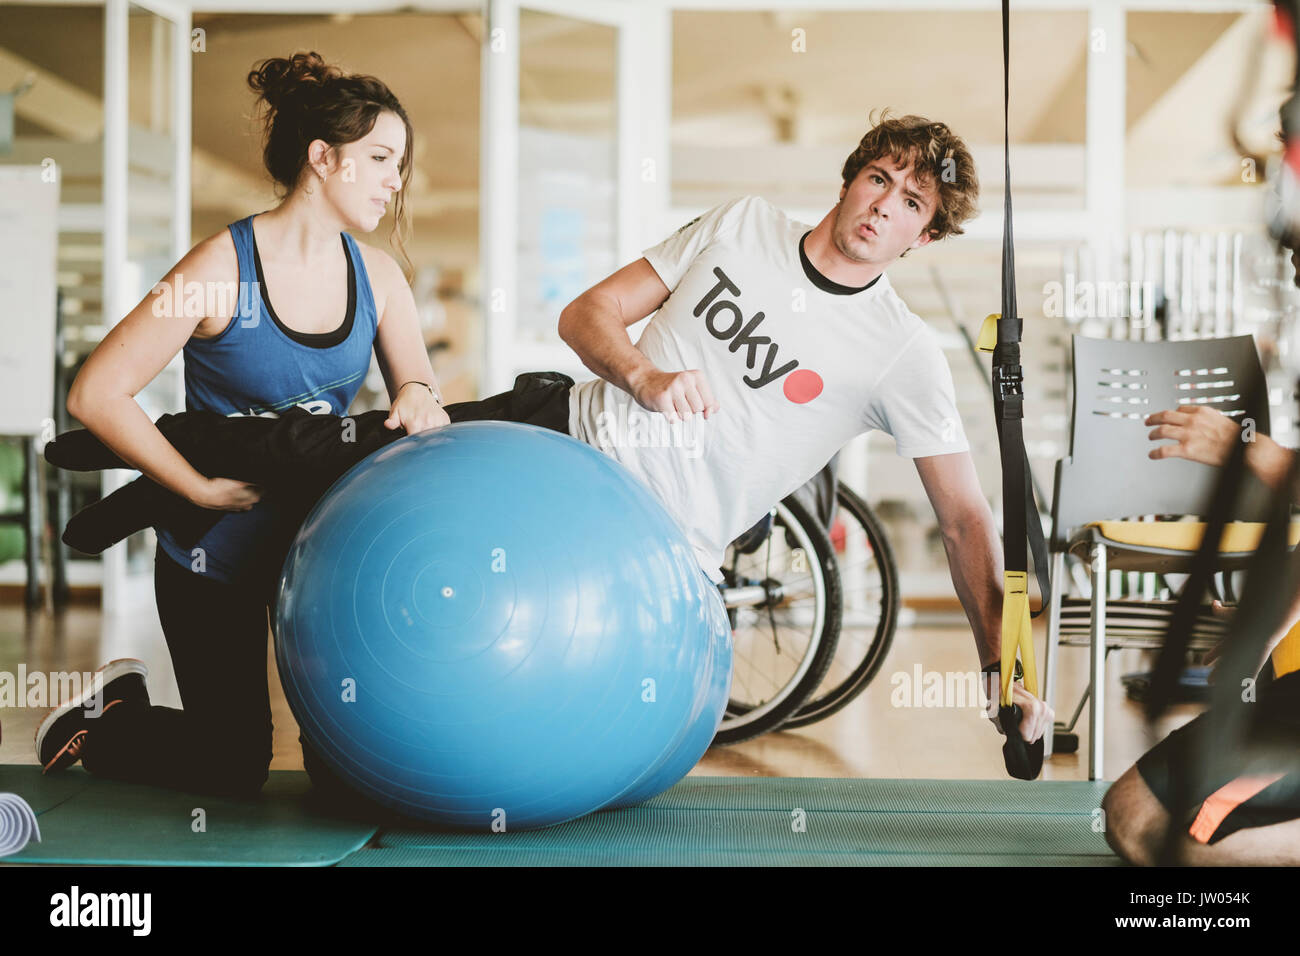 Mid adult man practicing with dumbbells during physiotherapy session Stock Photo